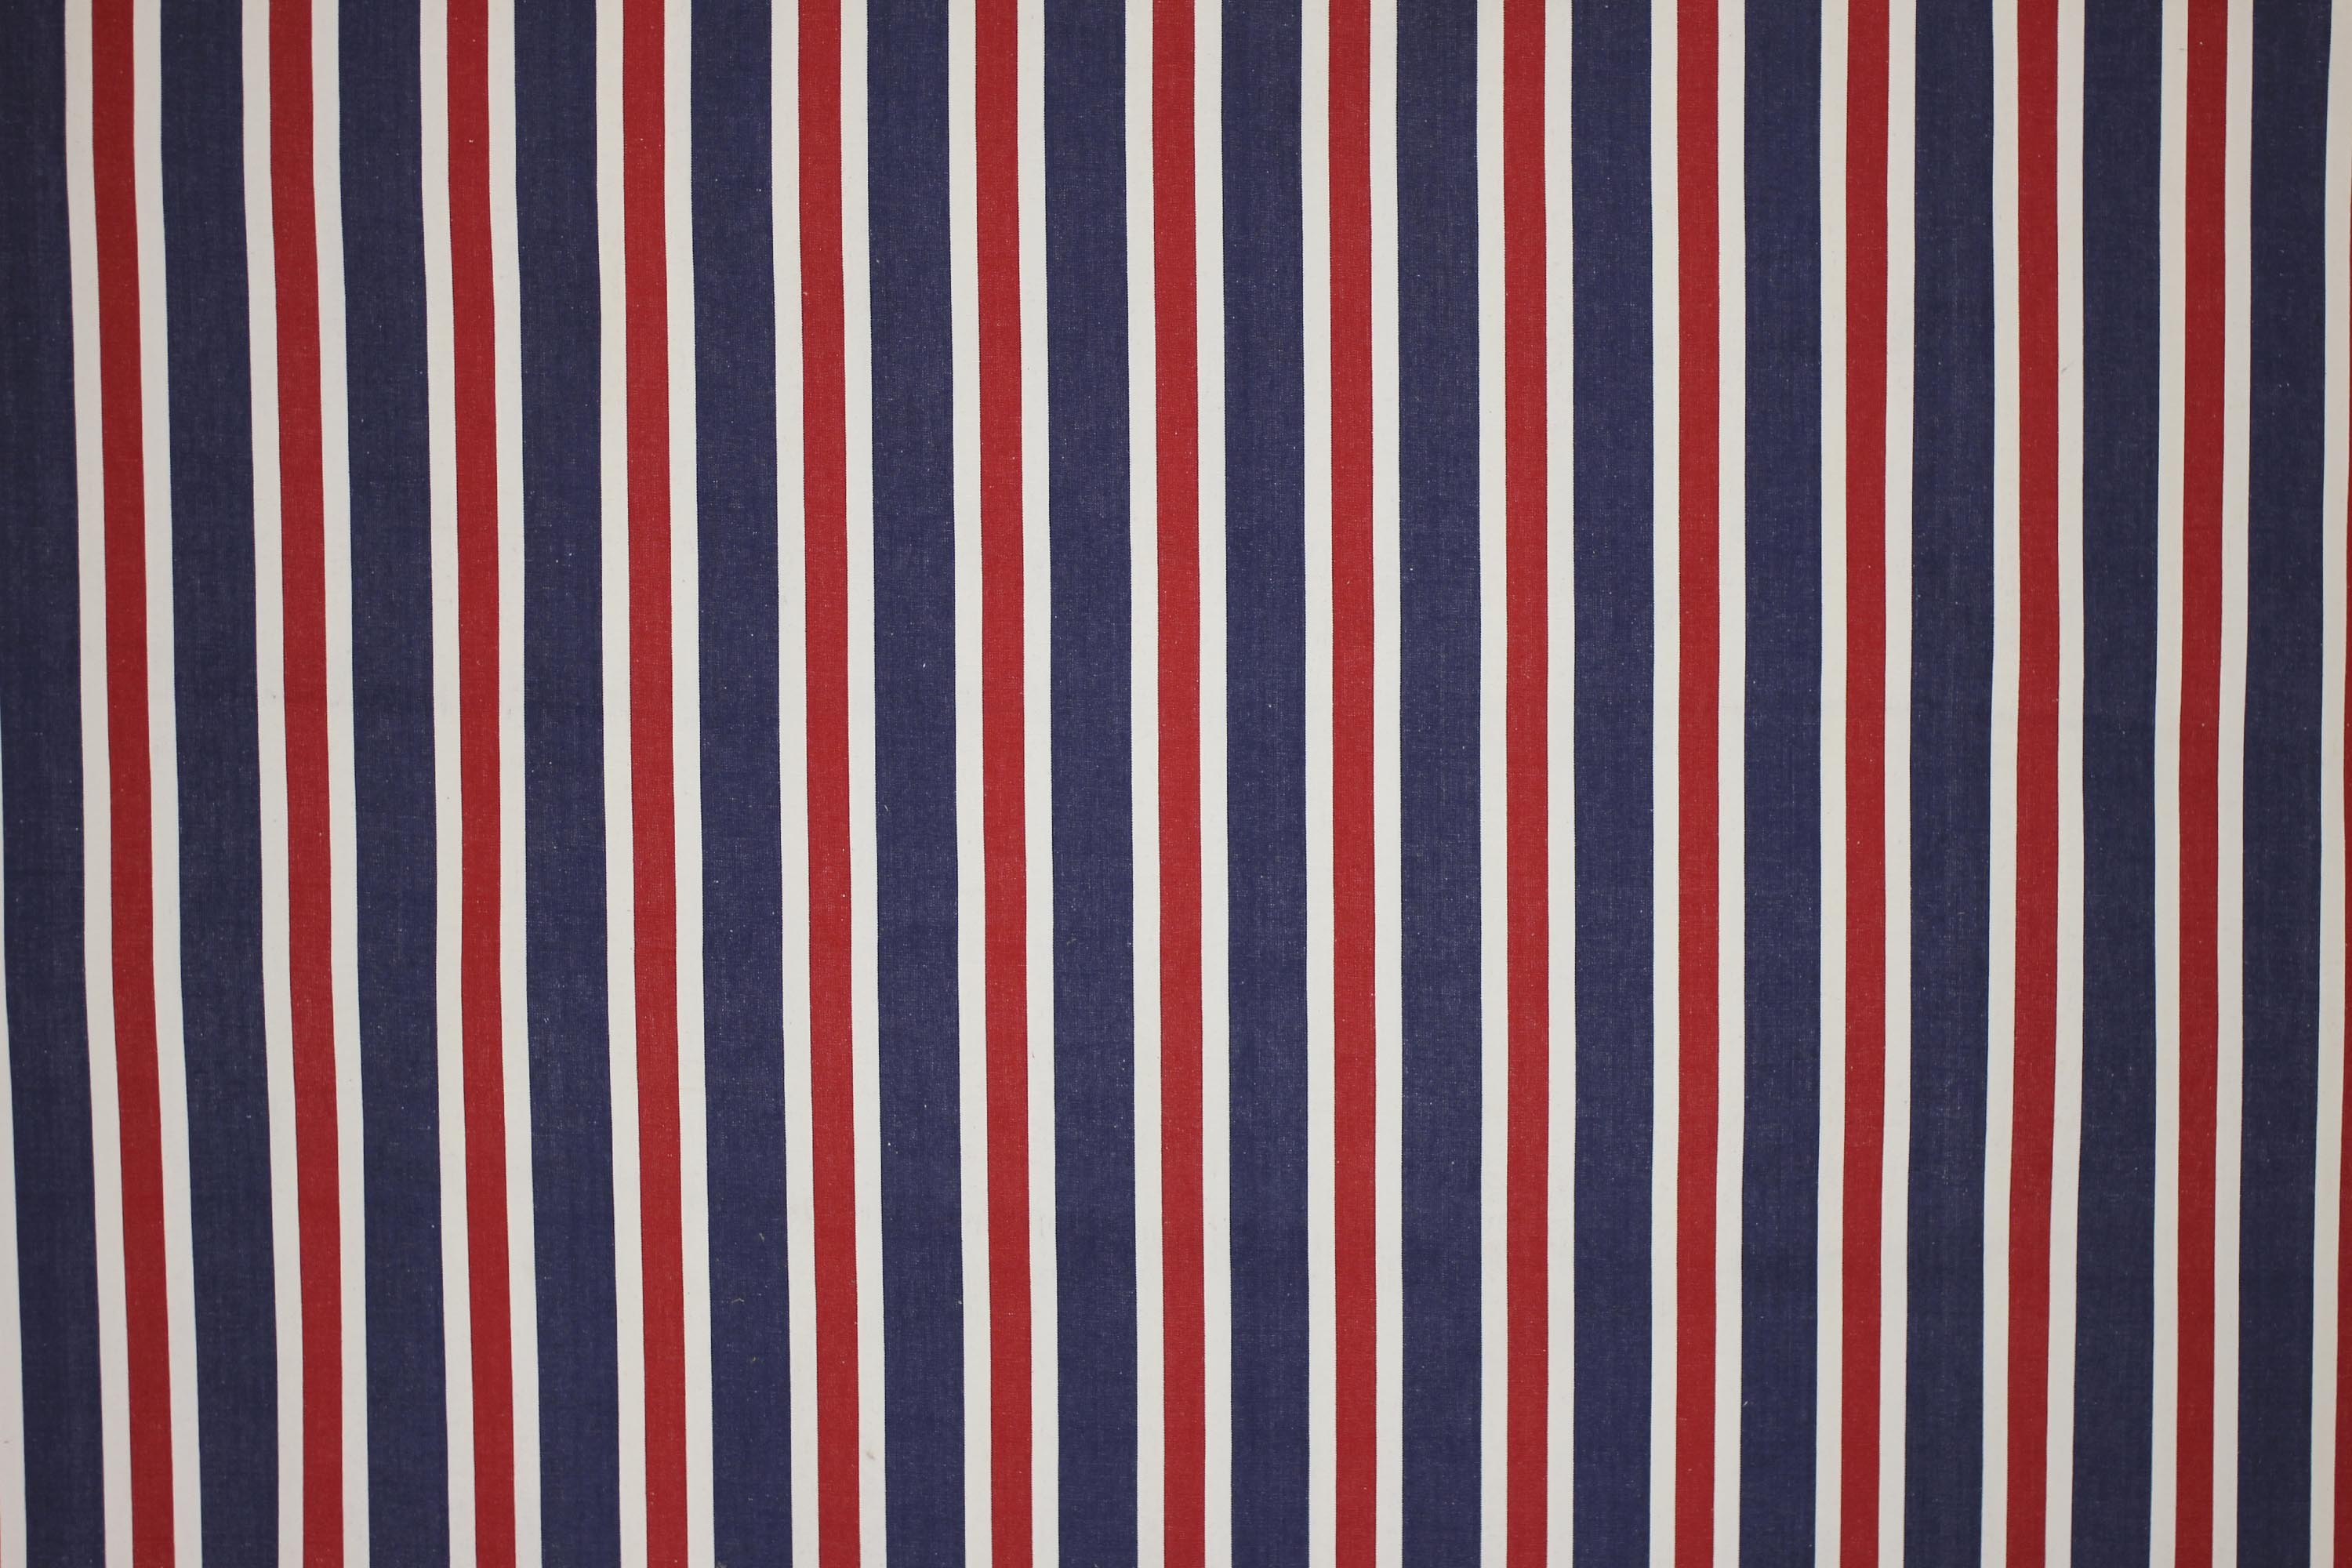 Red White and Blue Striped Fabrics | Patriotic Stripe Fabrics